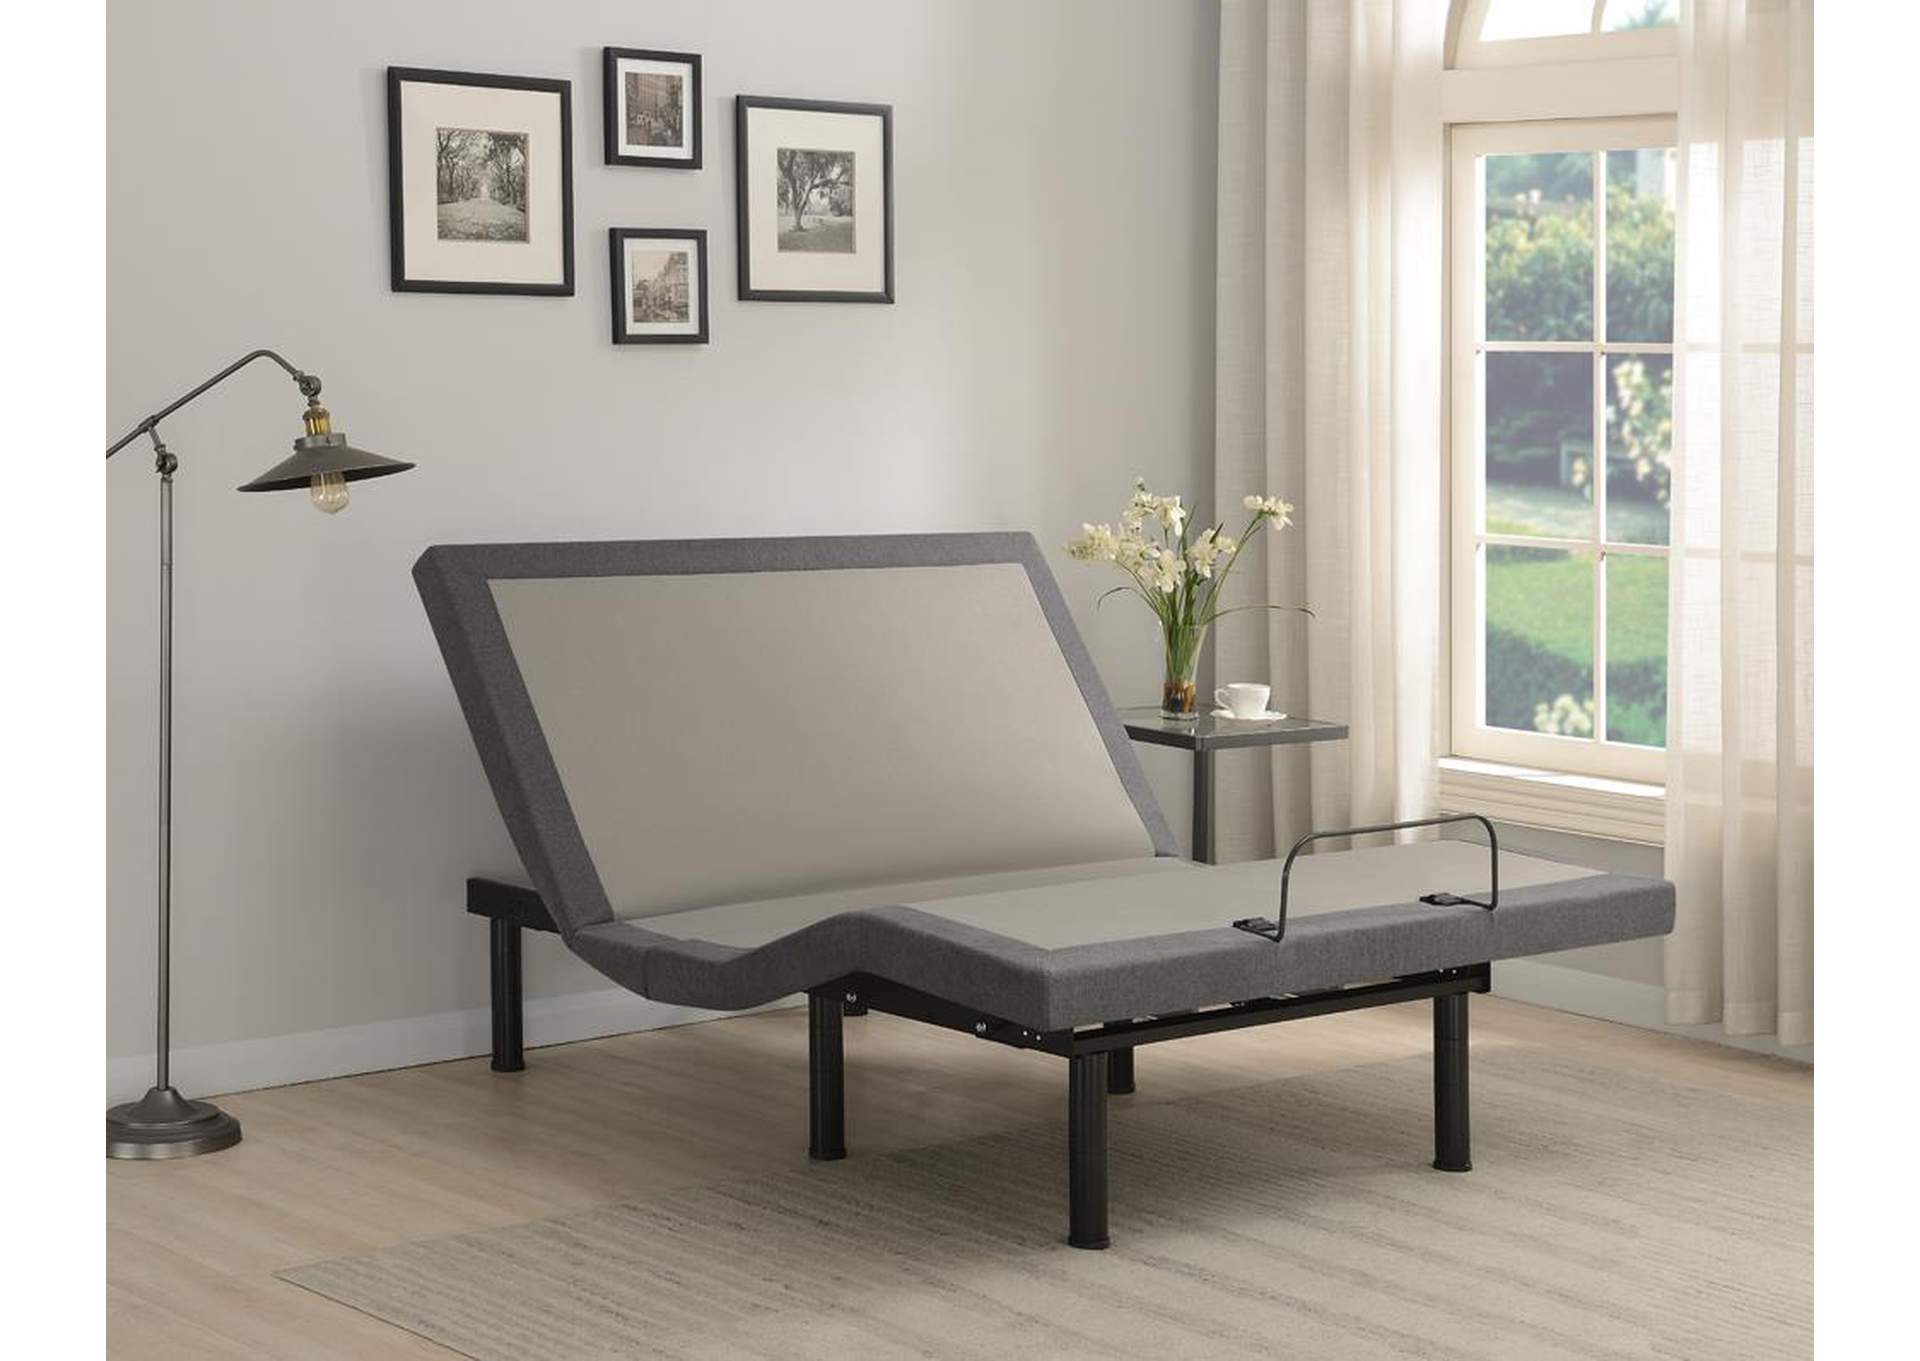 Clara Grey/Black Eastern King Adjustable Bed Base,Coaster Furniture